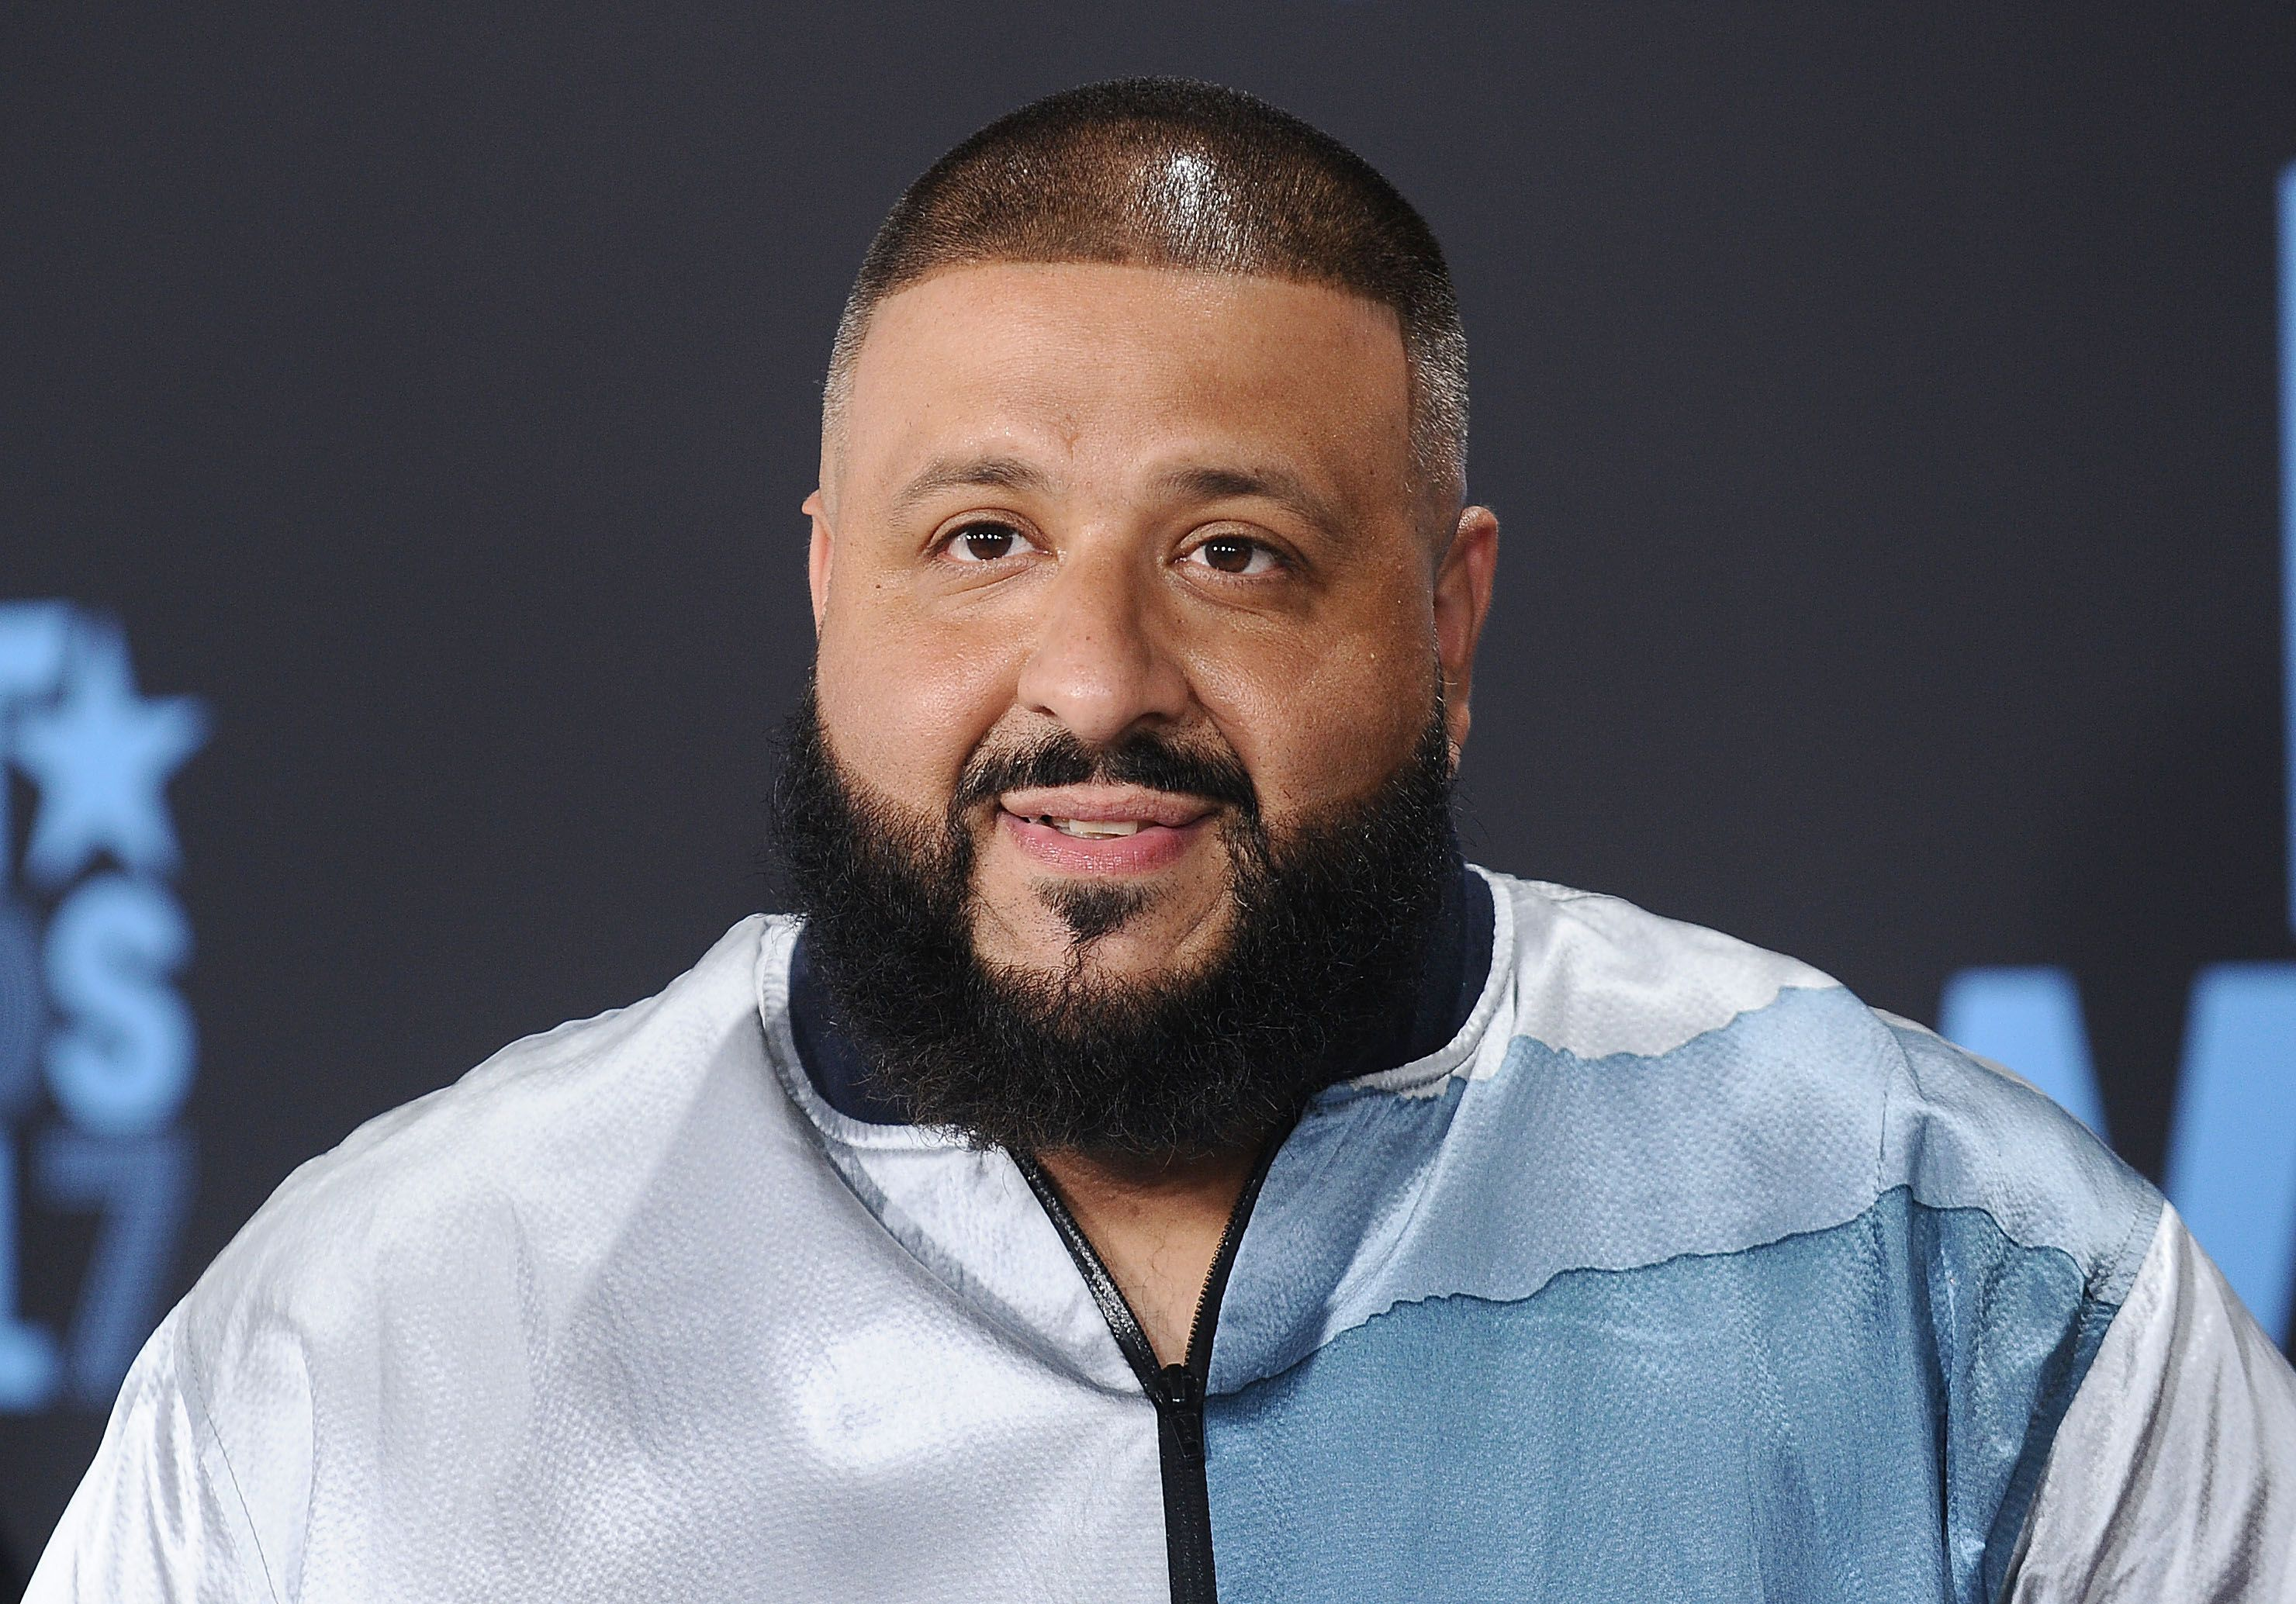 DJ Khaled attends the 2017 BET Awards at Microsoft Theater on June 25, 2017 in Los Angeles, California.   Source: Getty Images